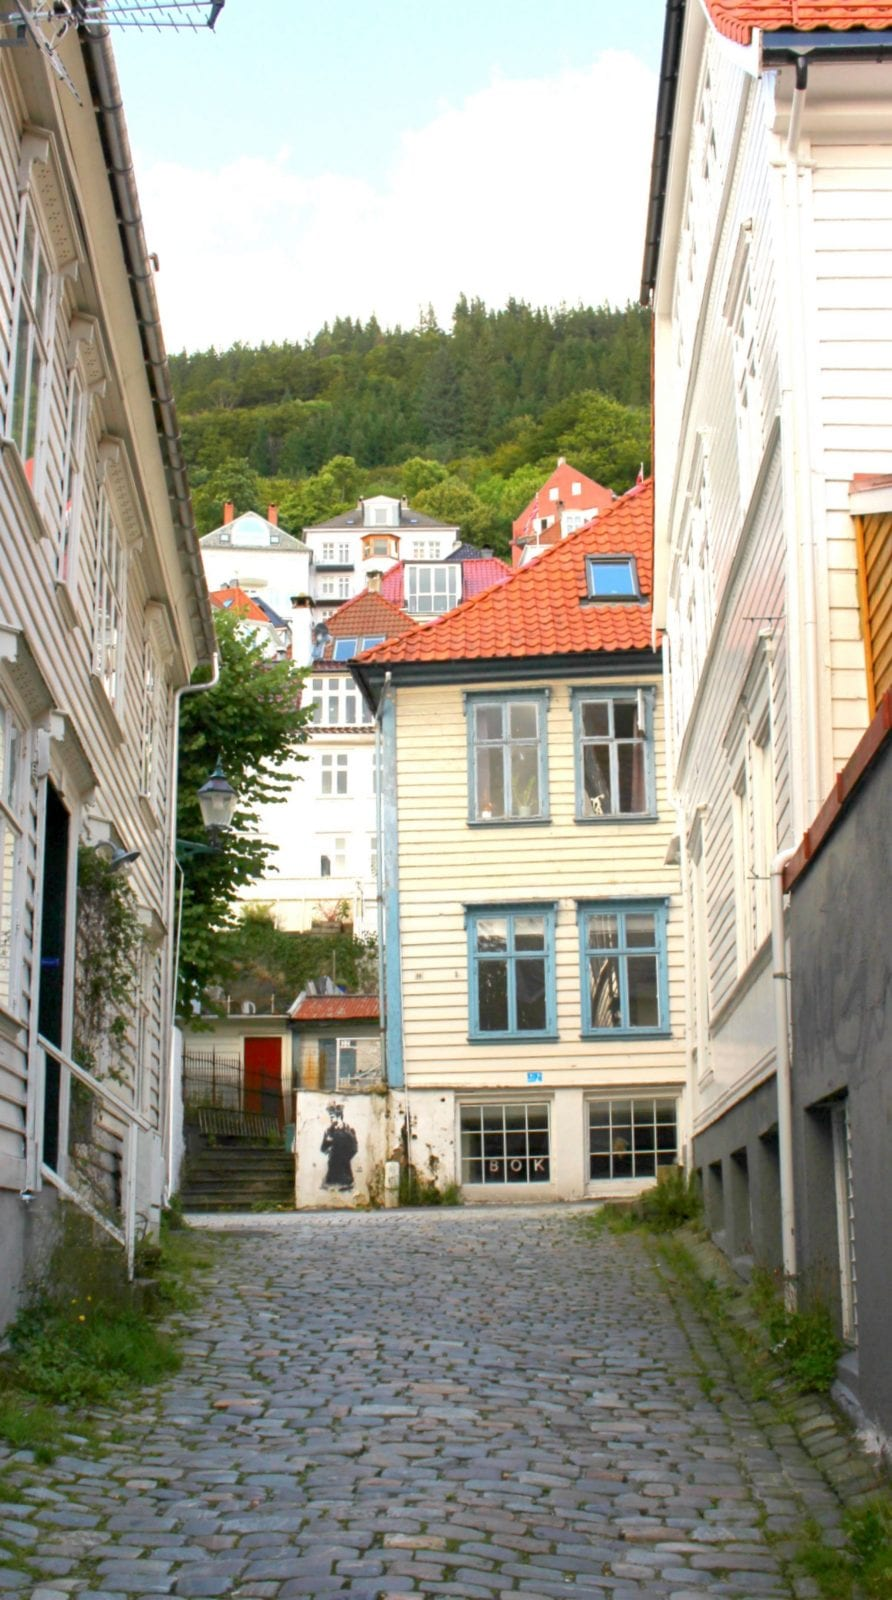 This is a glance at the amazing colorful streets of Bergen.